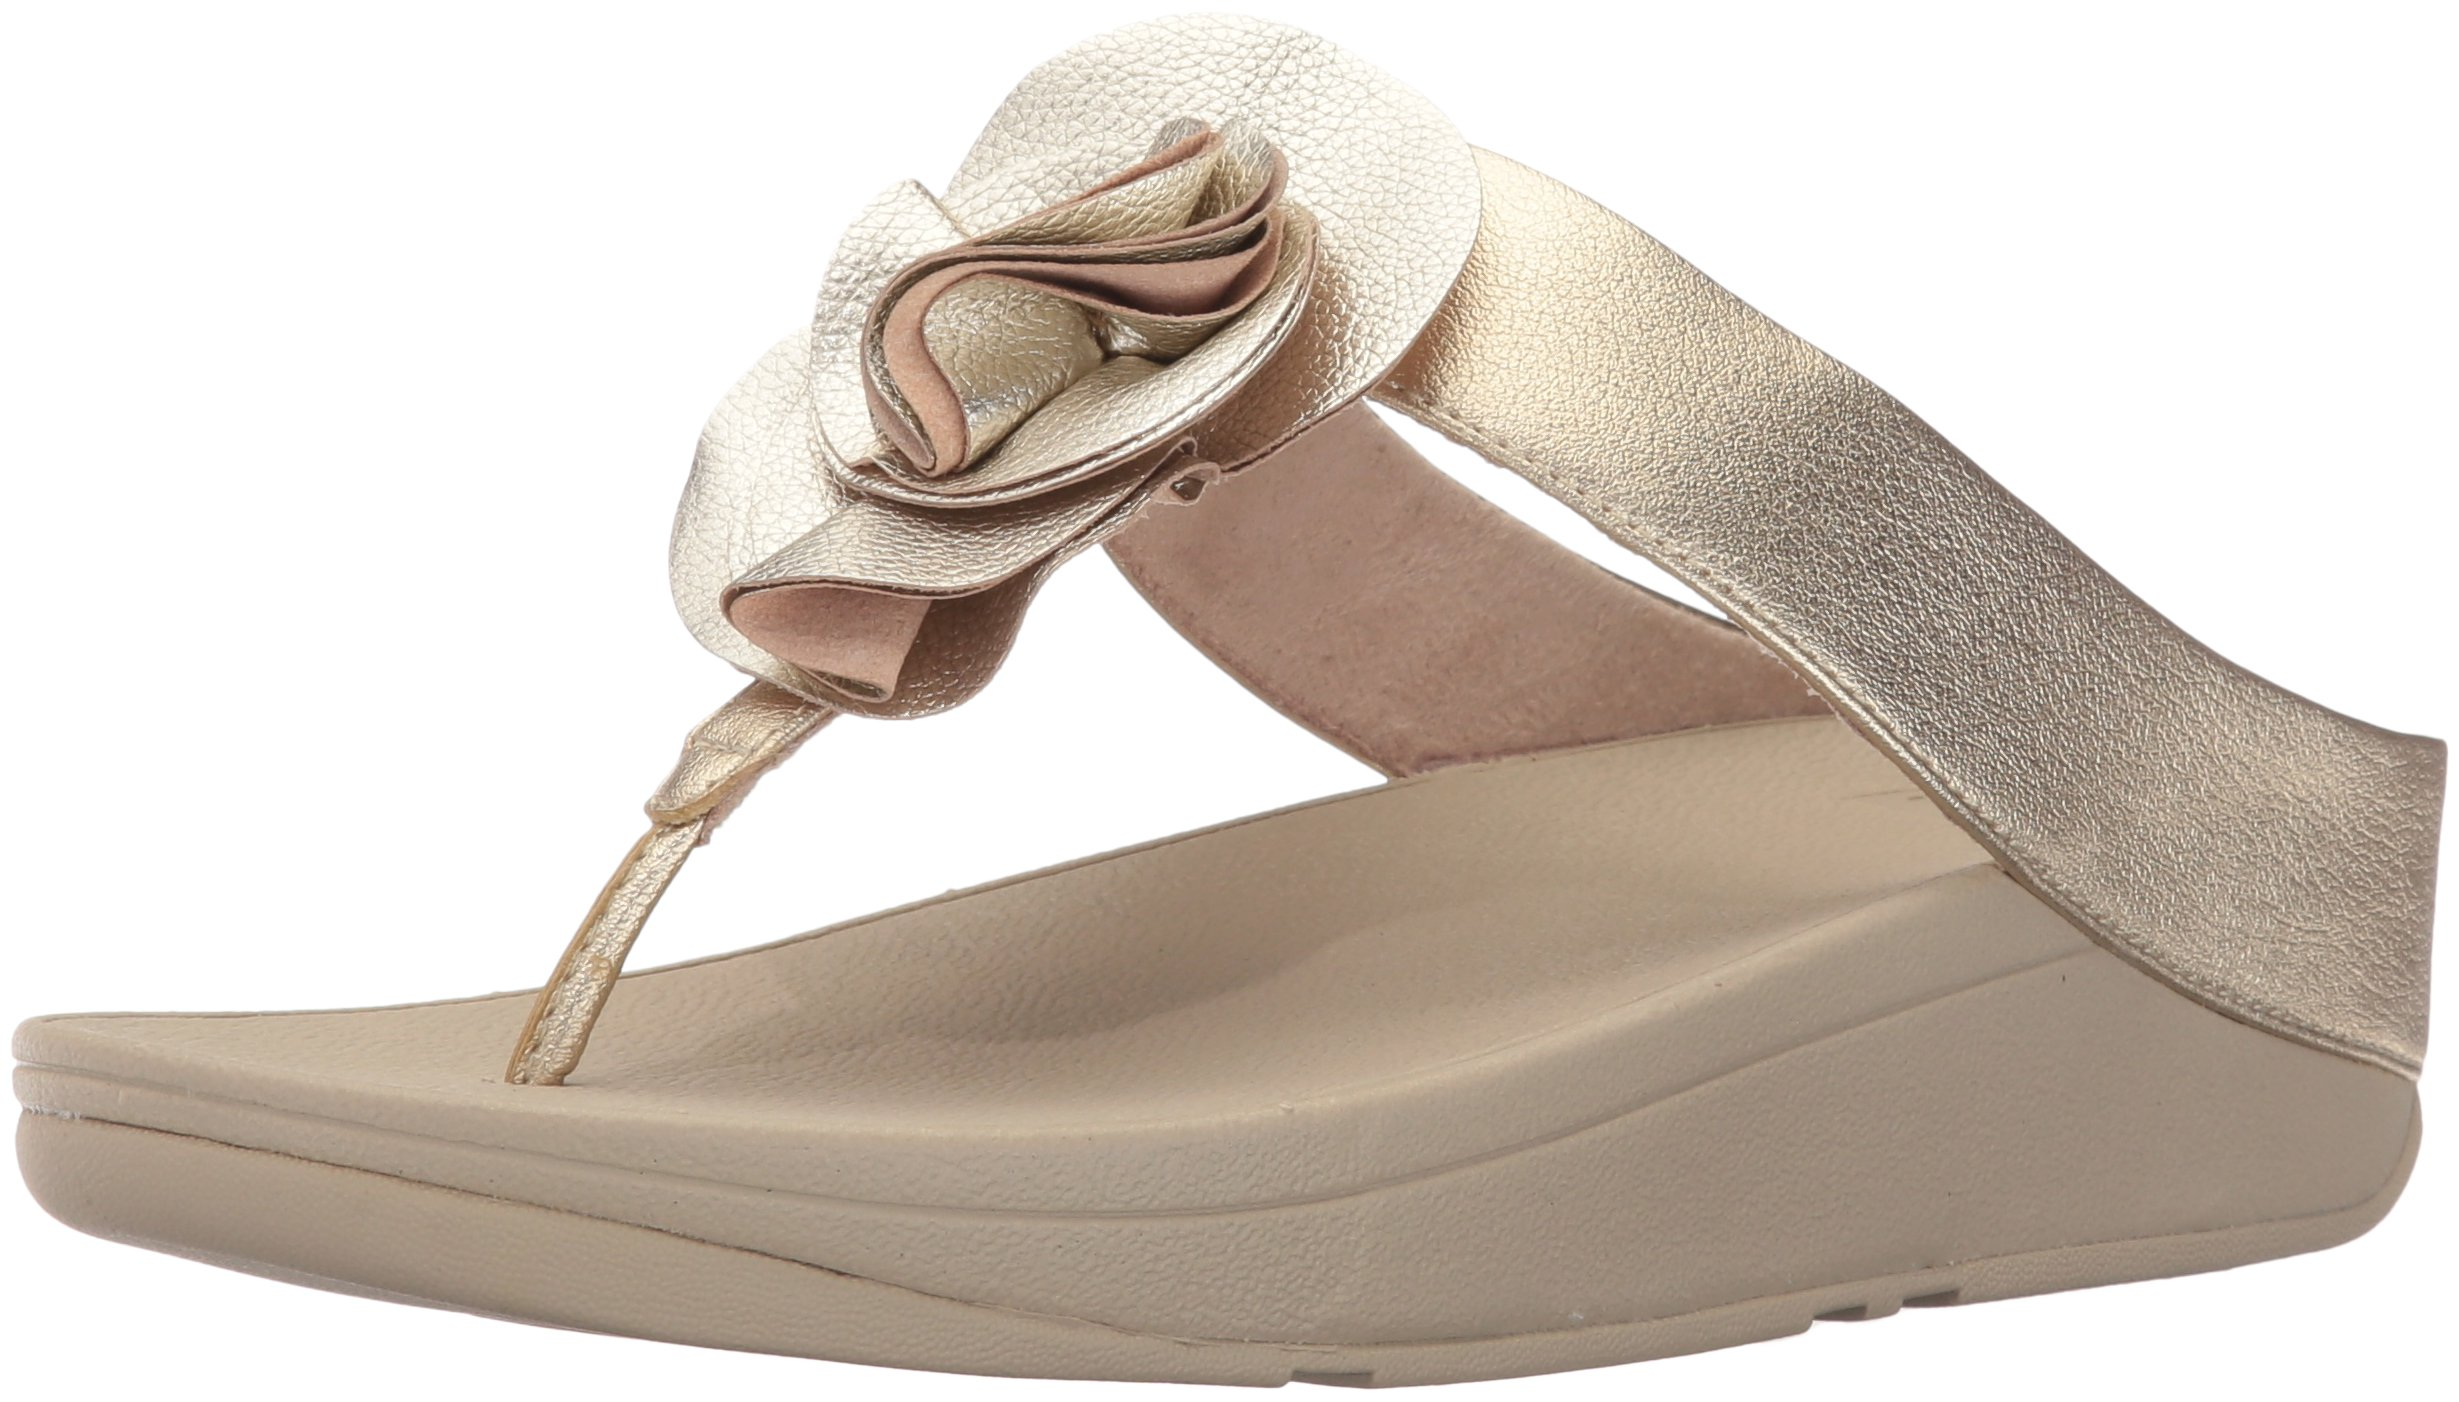 FitFlop Womens Florrie Toe-Thong Sandal, Pale Gold, 8 M US